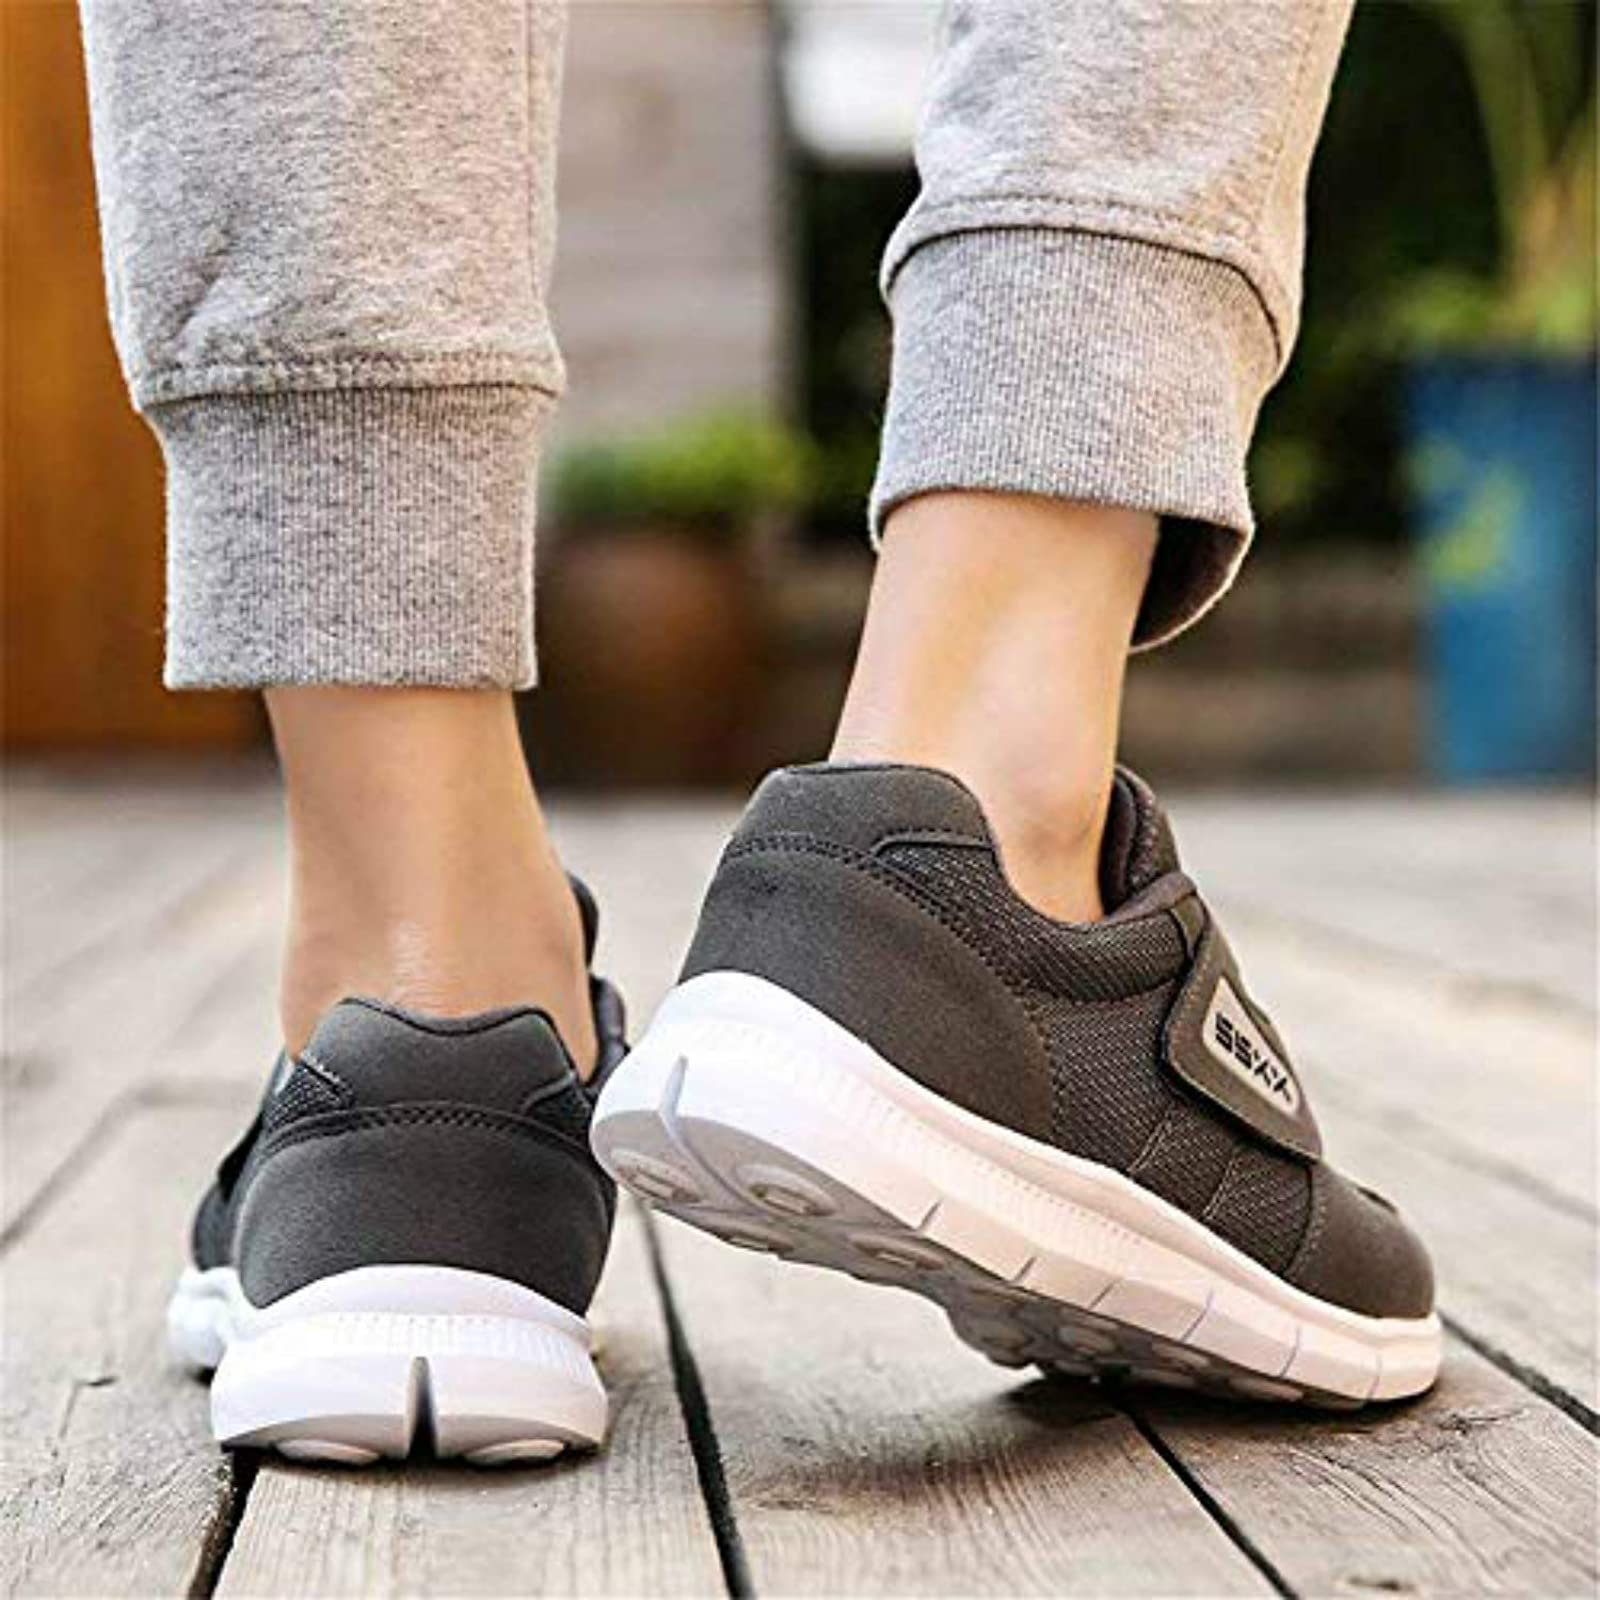 Fires Men's Casual Sneakers Lightweight Athletic - 5